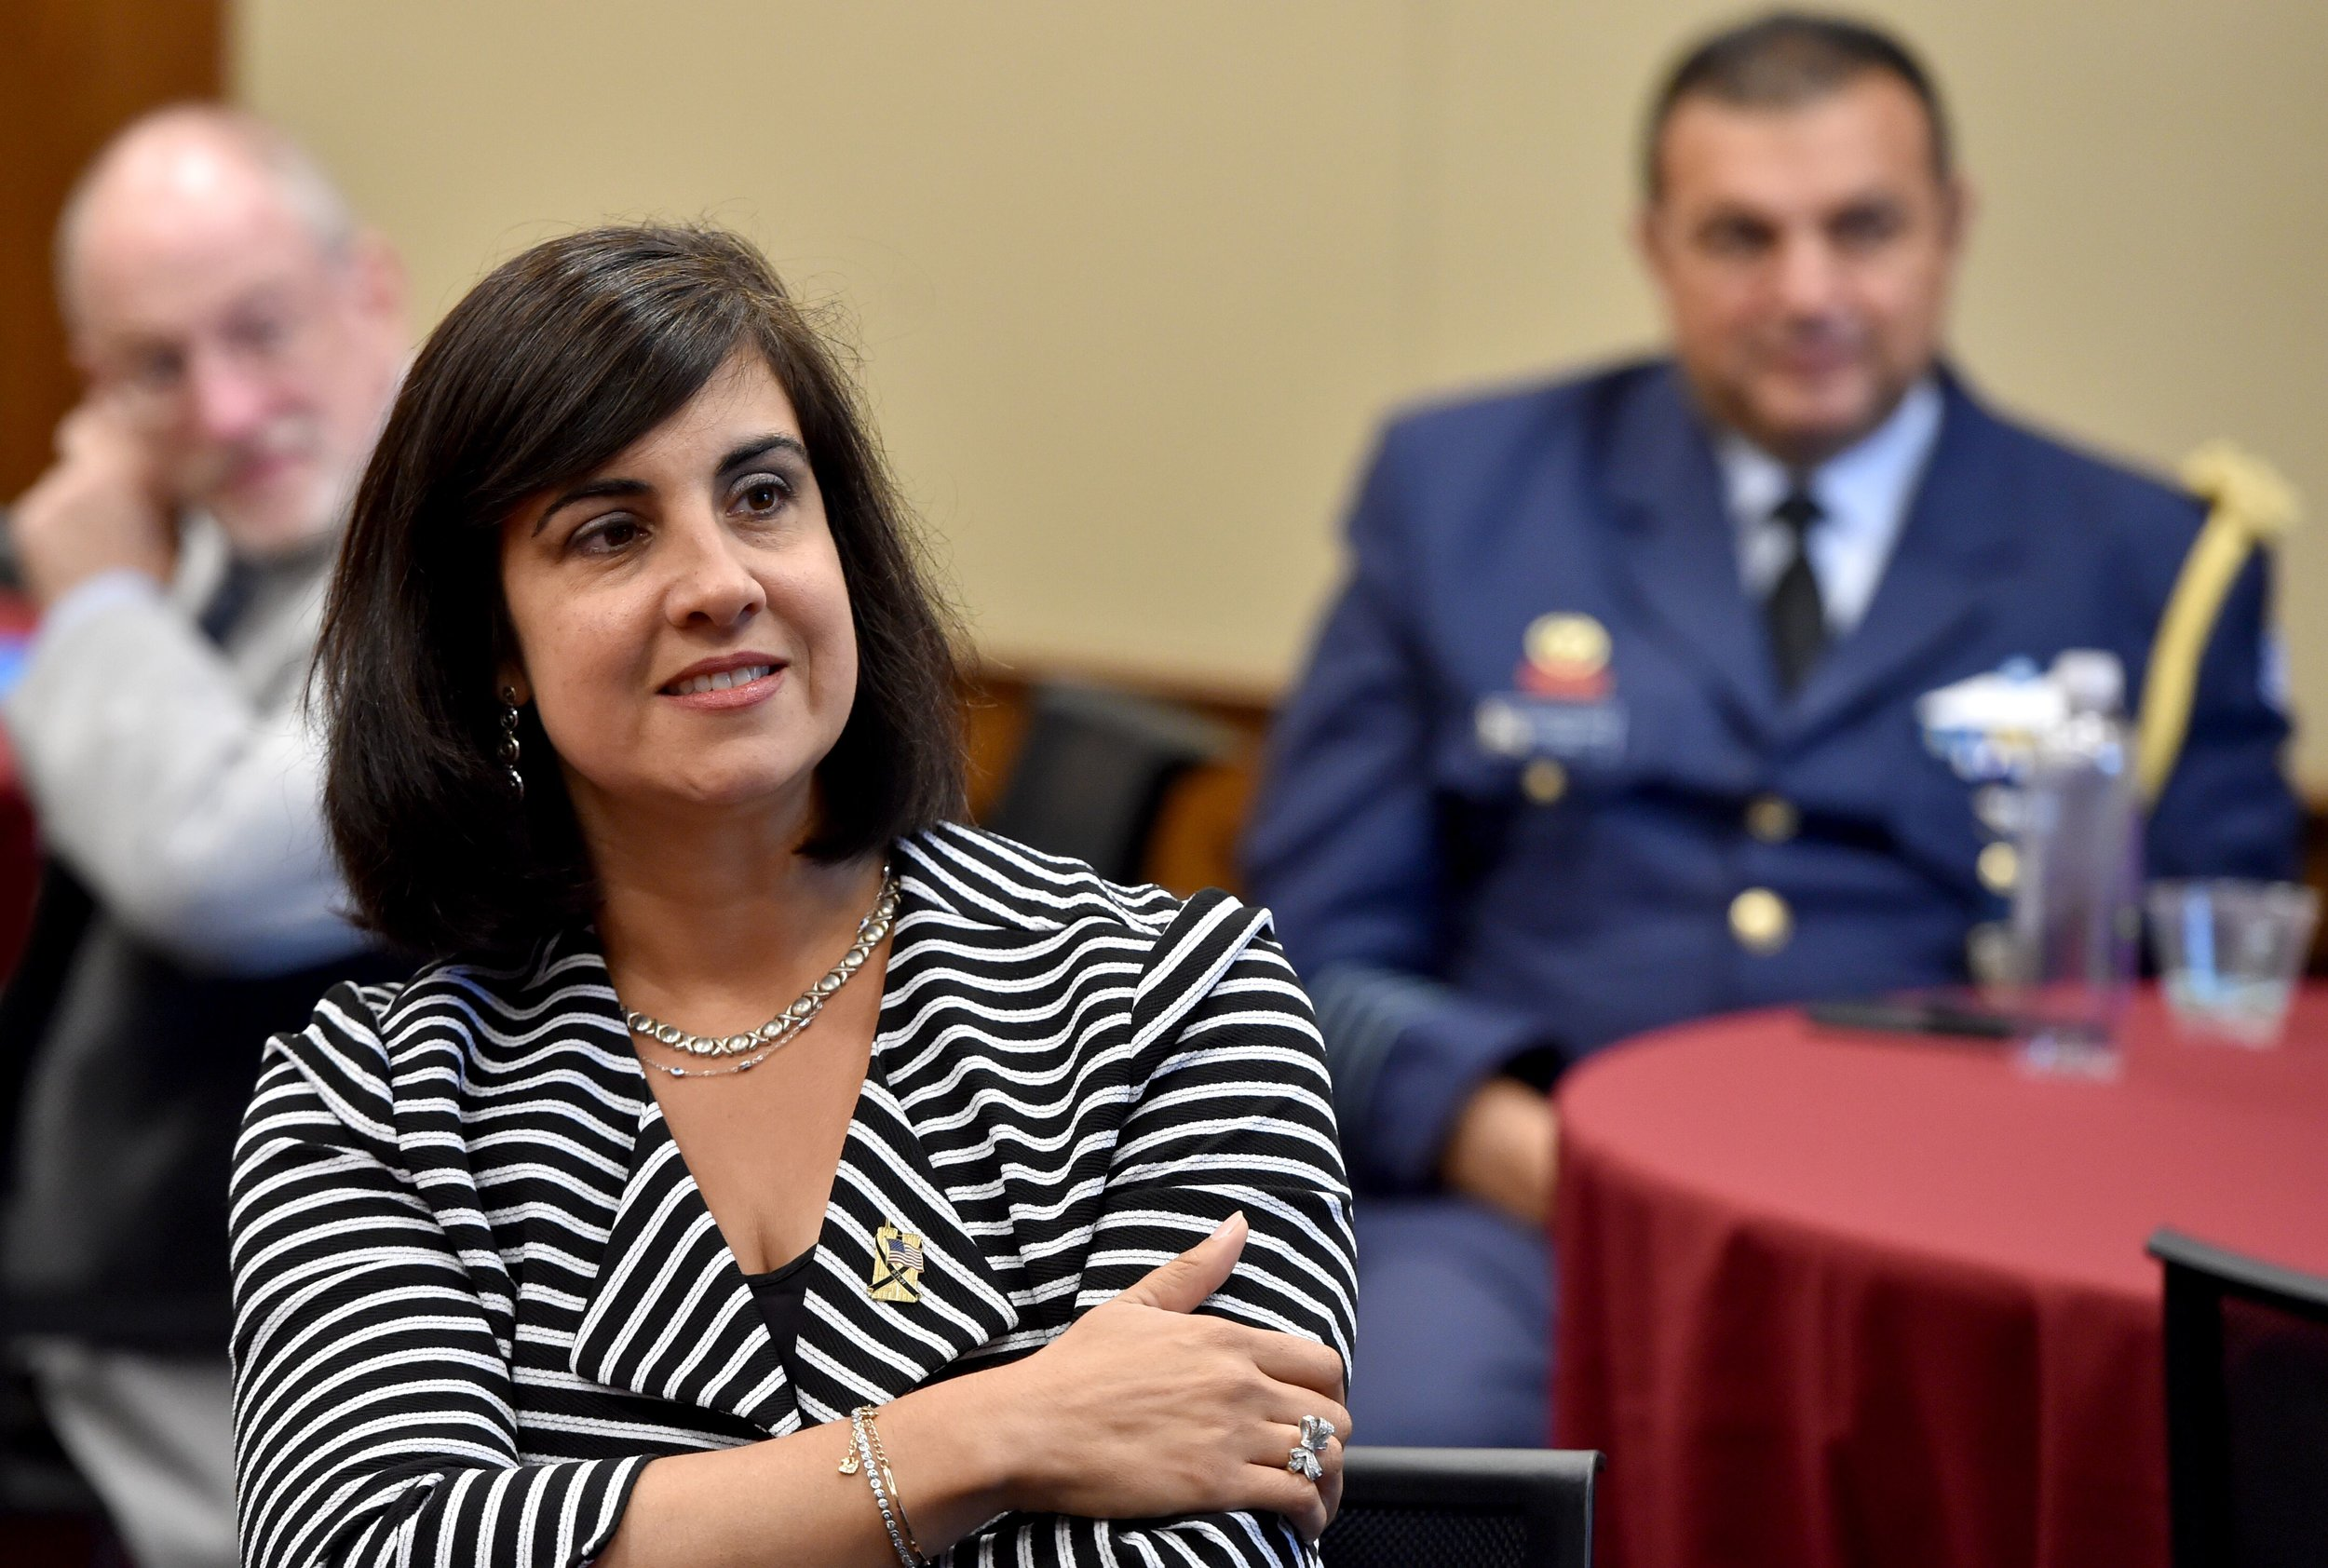 Assemblywoman Nicole Malliotakis (R-NY), a Greek-American candidate for Congress, attending AHI's Cyprus Commemoration